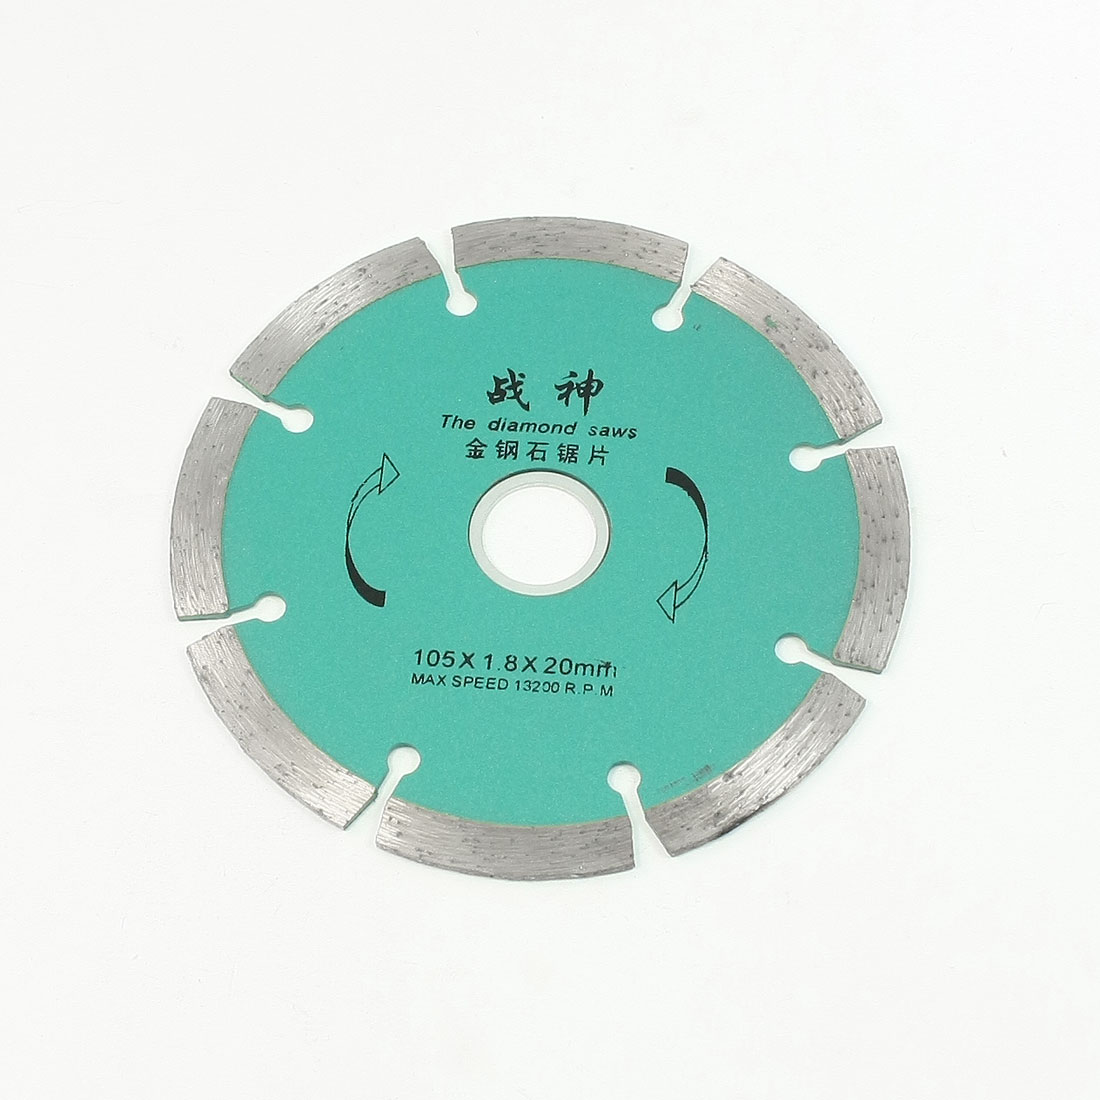 105mm Outside Dia 20mm Inner Dia 1.8mm Thick Diamond Saw Cutting Slice